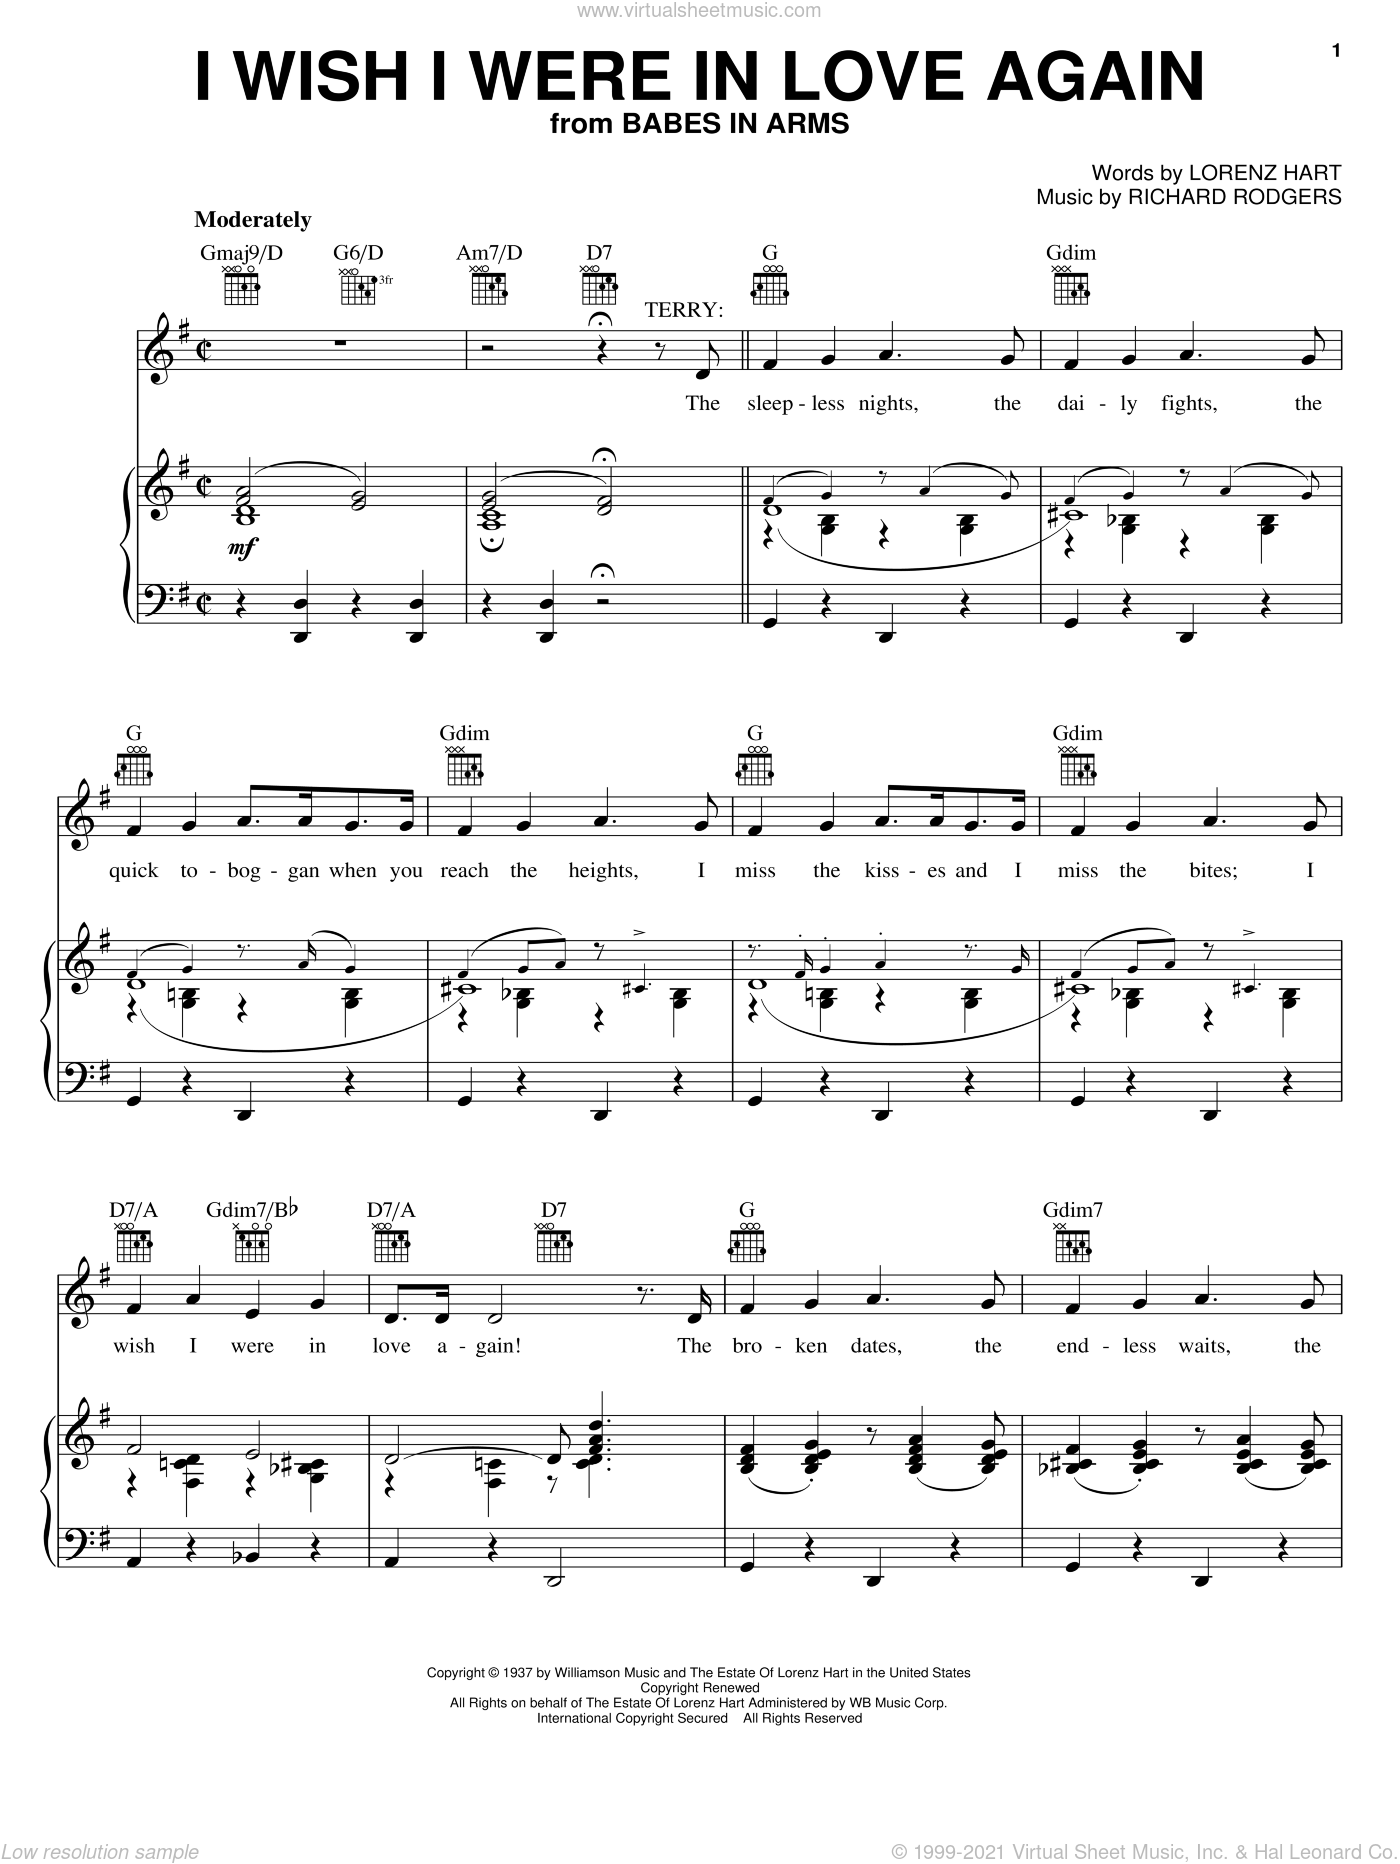 I Wish I Were In Love Again sheet music for voice, piano or guitar by Richard Rodgers